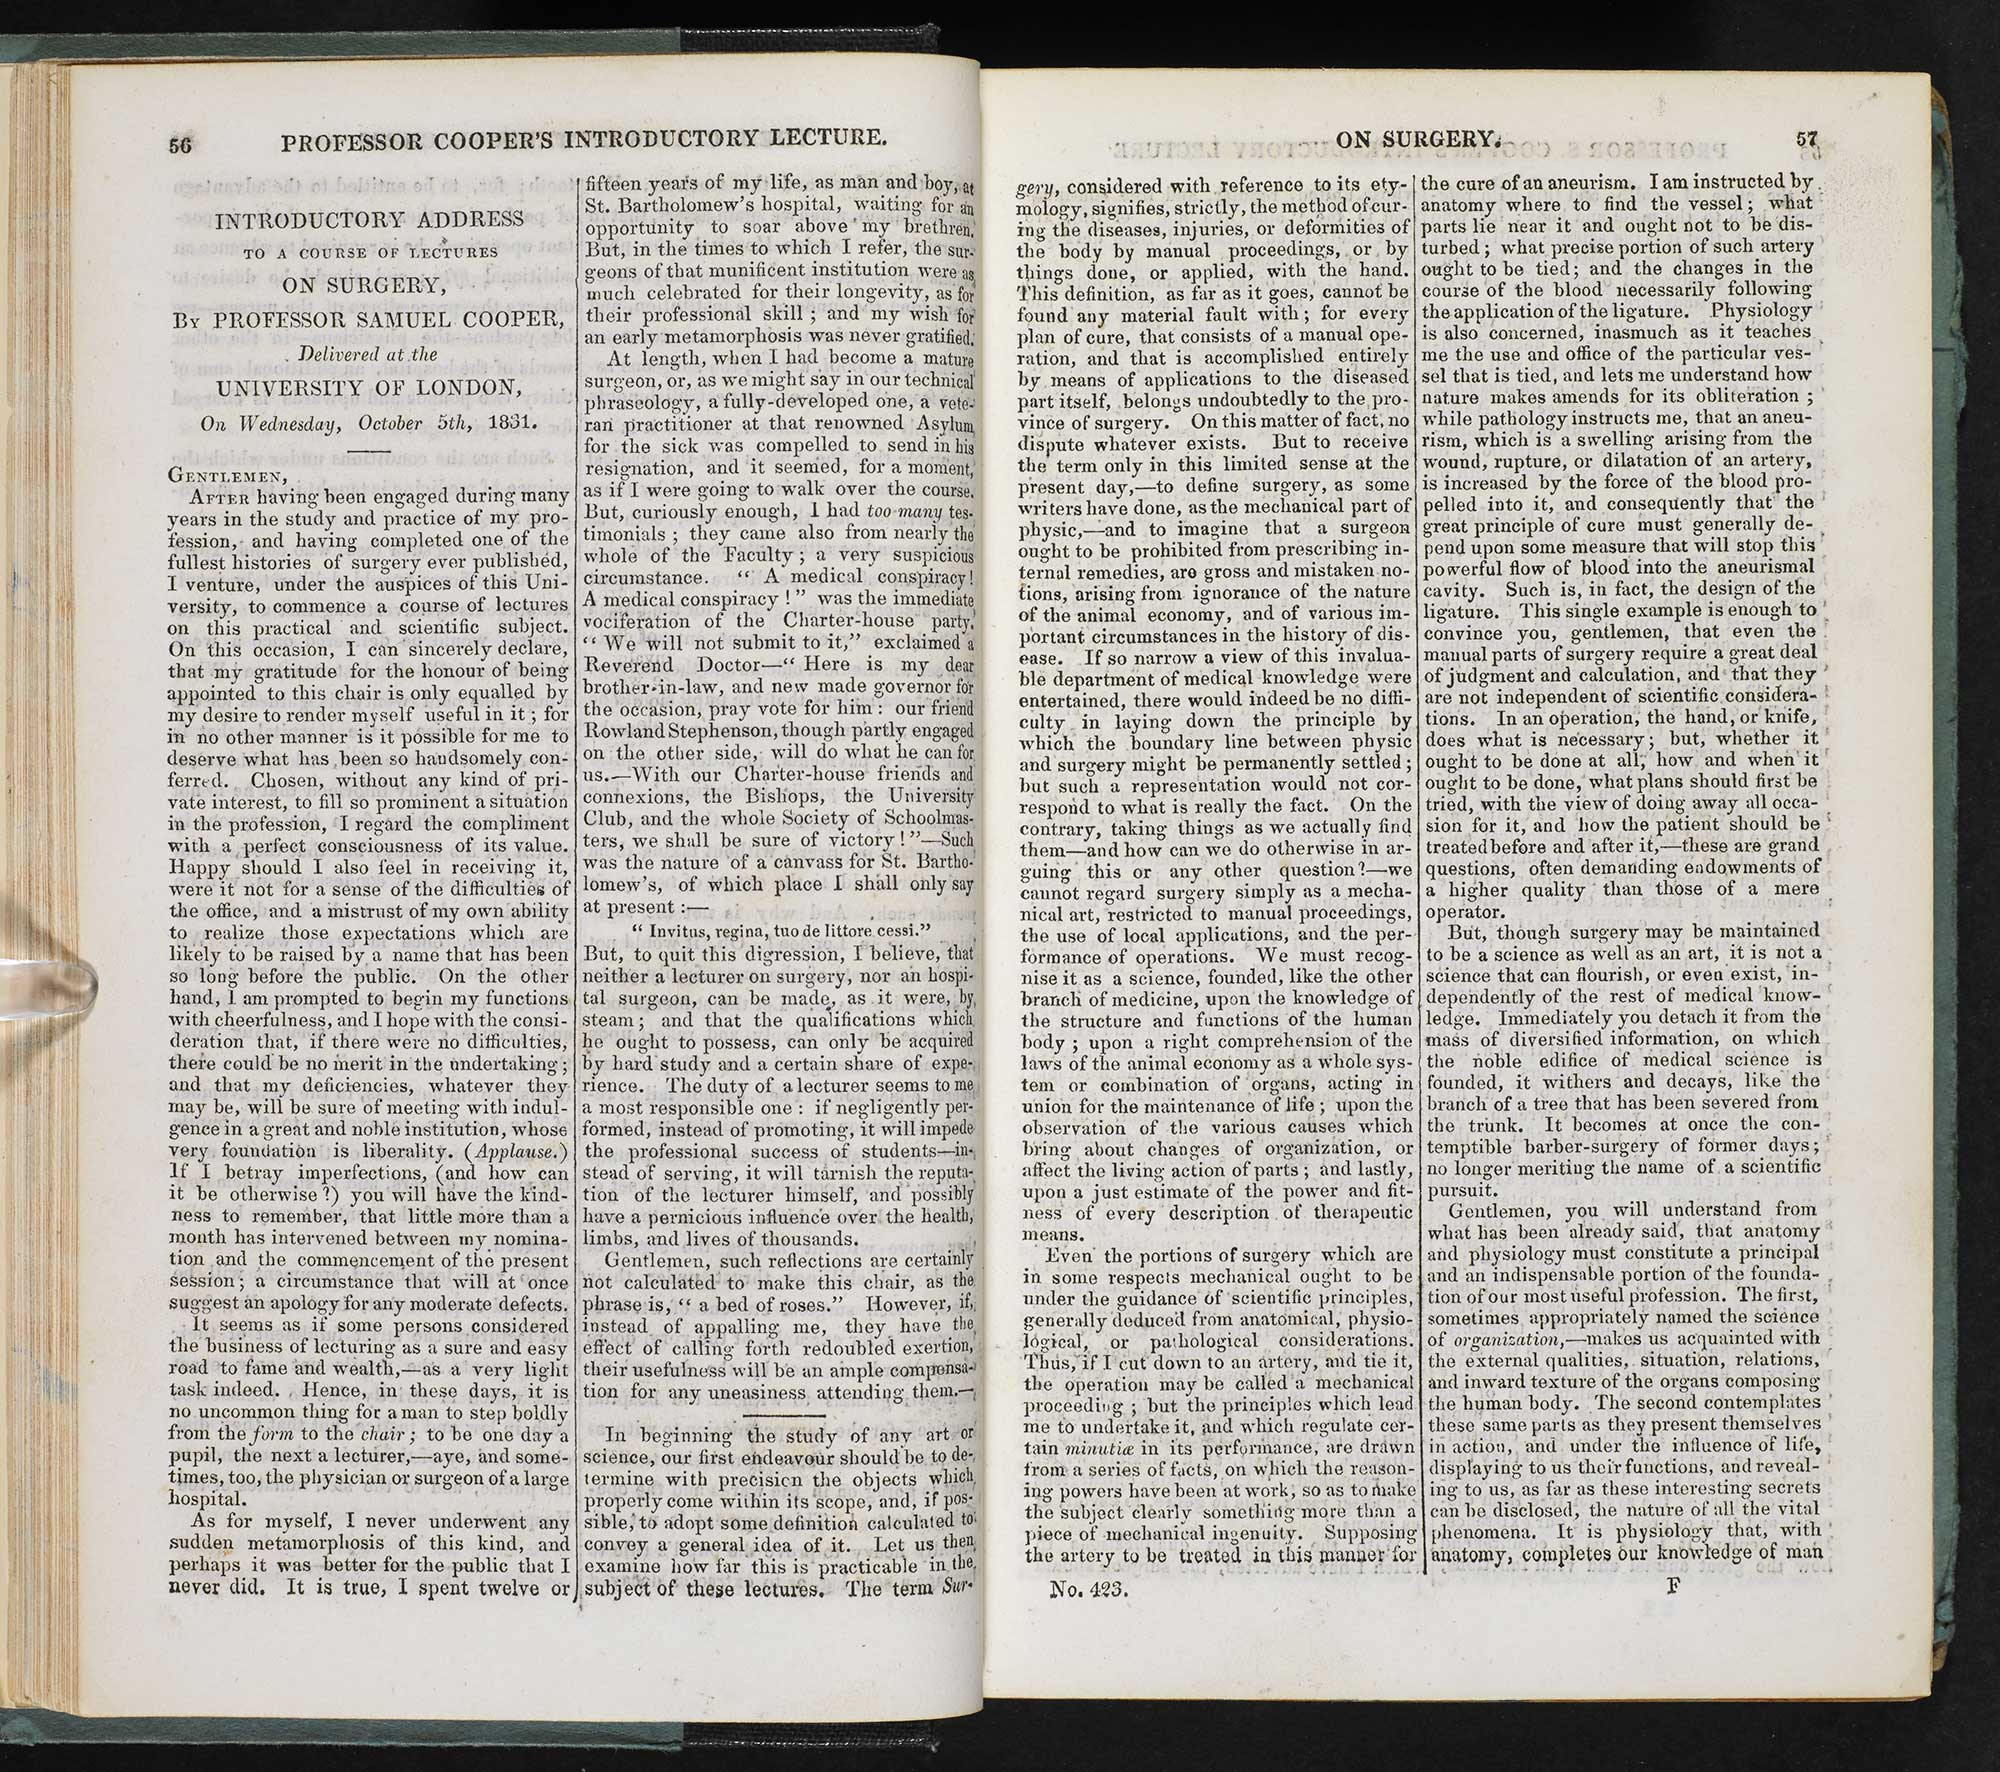 Issues of medical journal The Lancet, 1831-32 - The British Library